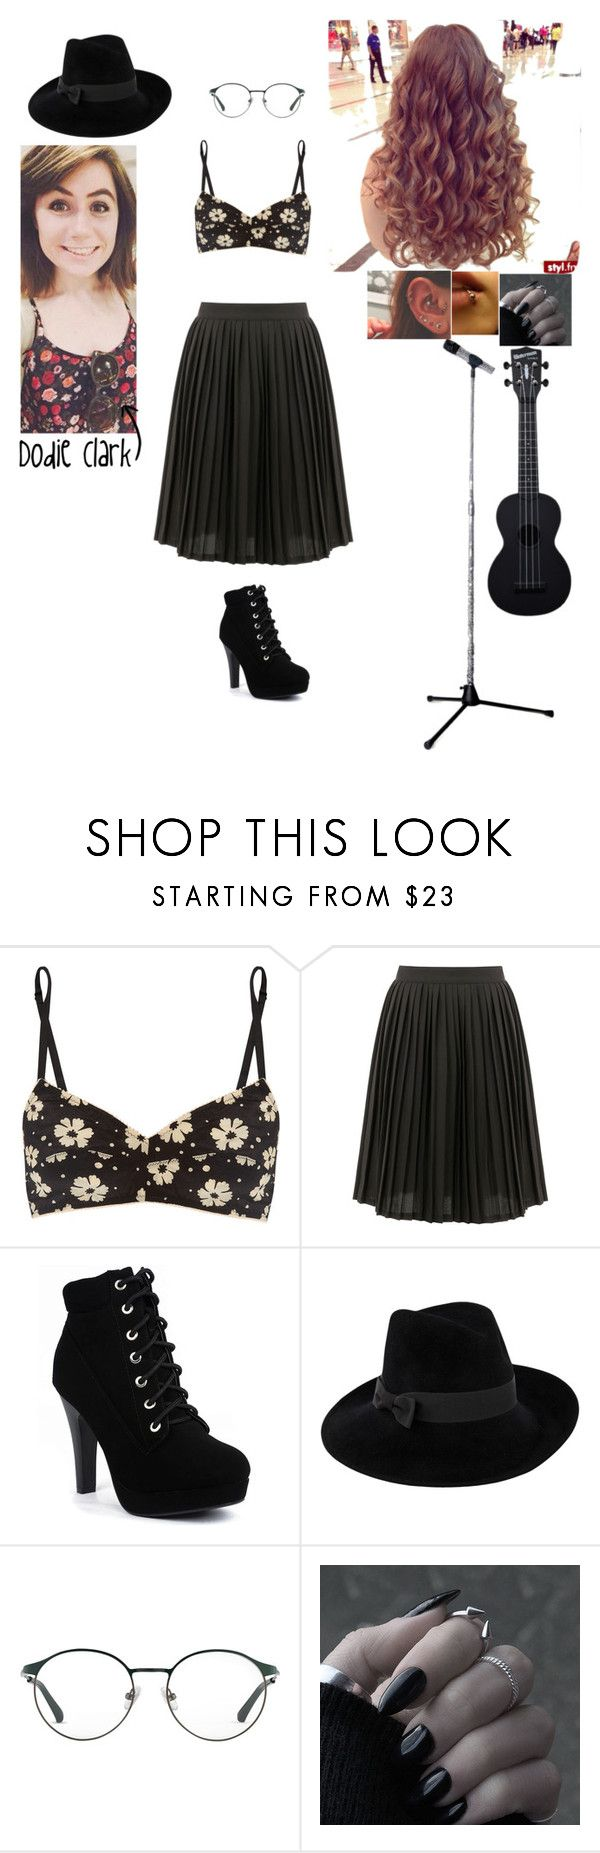 """""""I Saw Dodie Clark In Concert With My Girlfriend!!!!!"""" by thissillykitty ❤ liked on Polyvore featuring Bottega Veneta, Mademoiselle Slassi, 3.1 Phillip Lim and Waterman"""